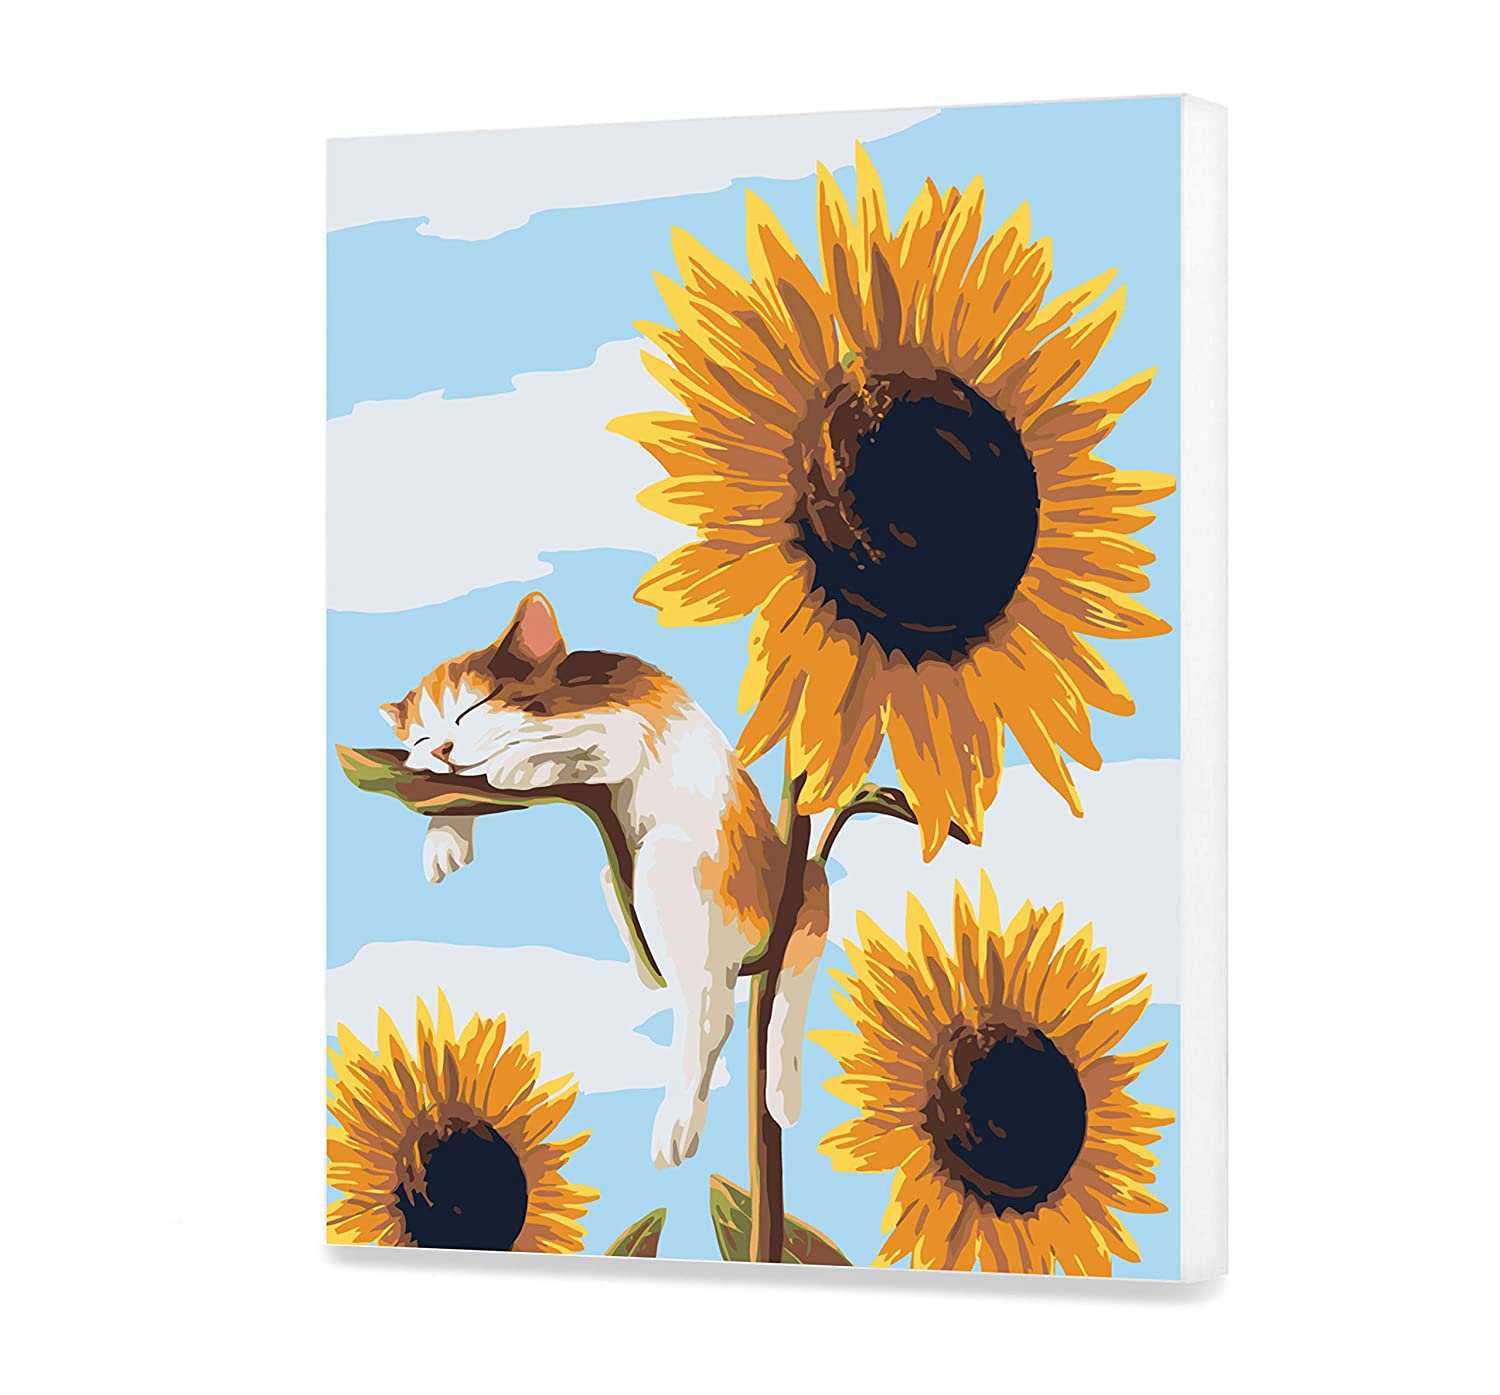 Sleeping Cat Home Decor DIY Adult Summer Dream Painting by Numbers Sunflowers Picture Divided by Numbers Veronica Minozzi Kit for Adult with Unique Design Perfect Gift